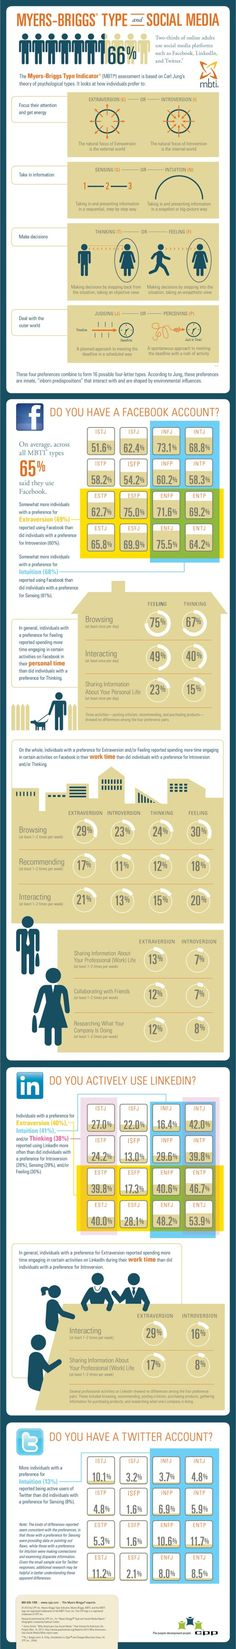 Infographic: Social Media and Myers Briggs